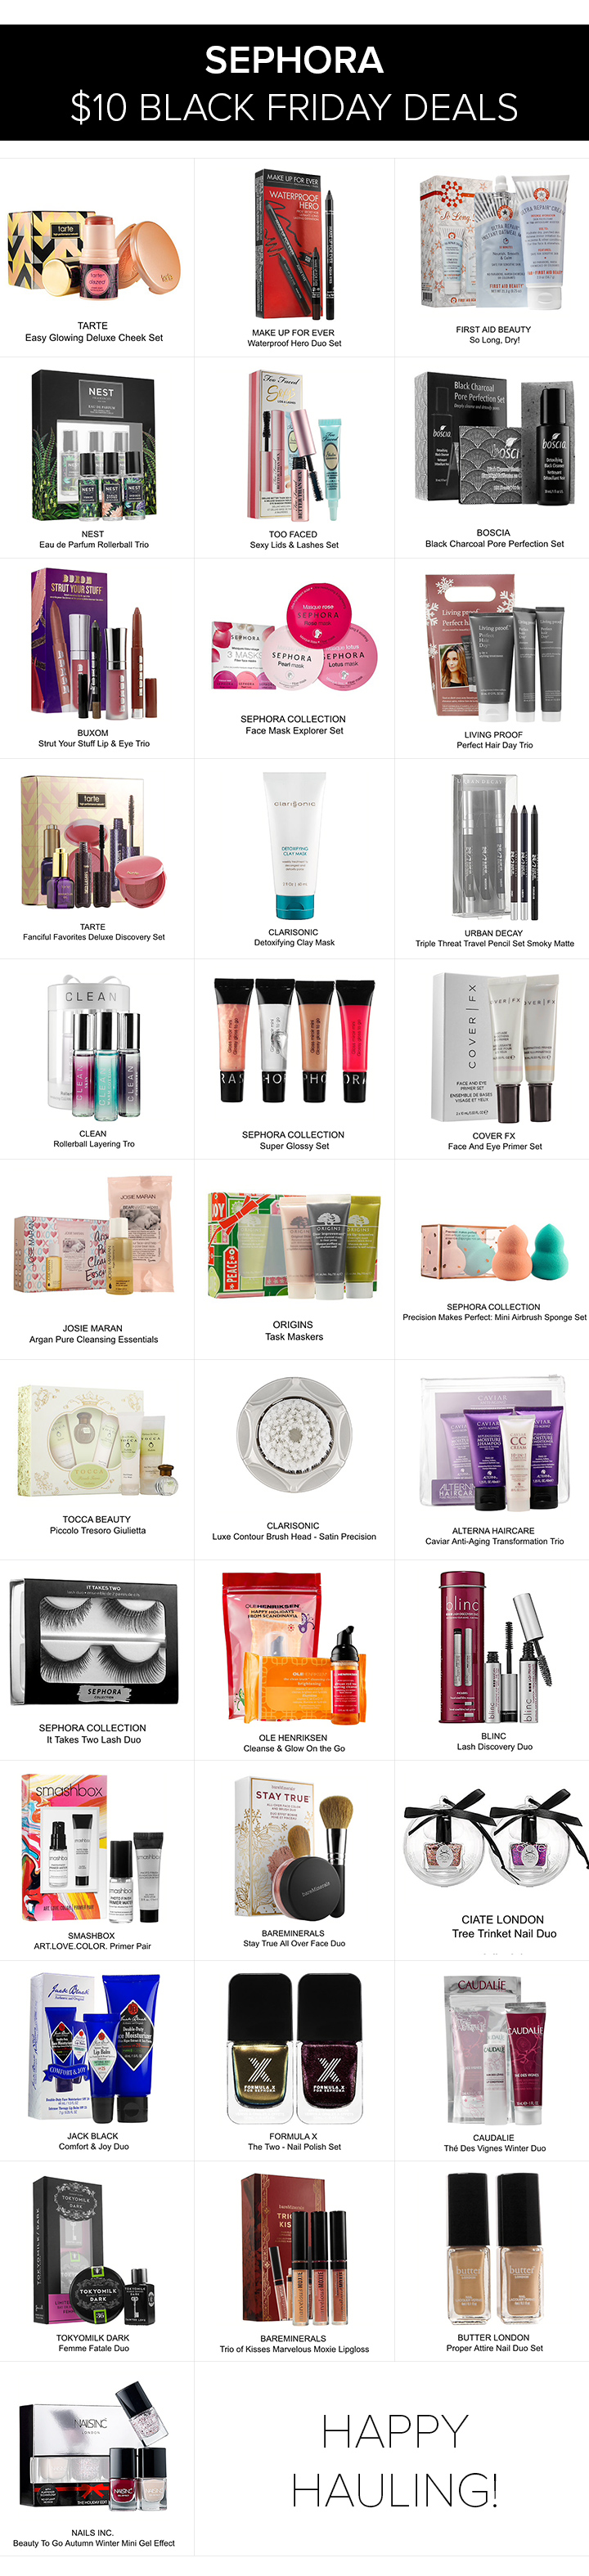 Sephora $10 Black Friday Deals (2015)